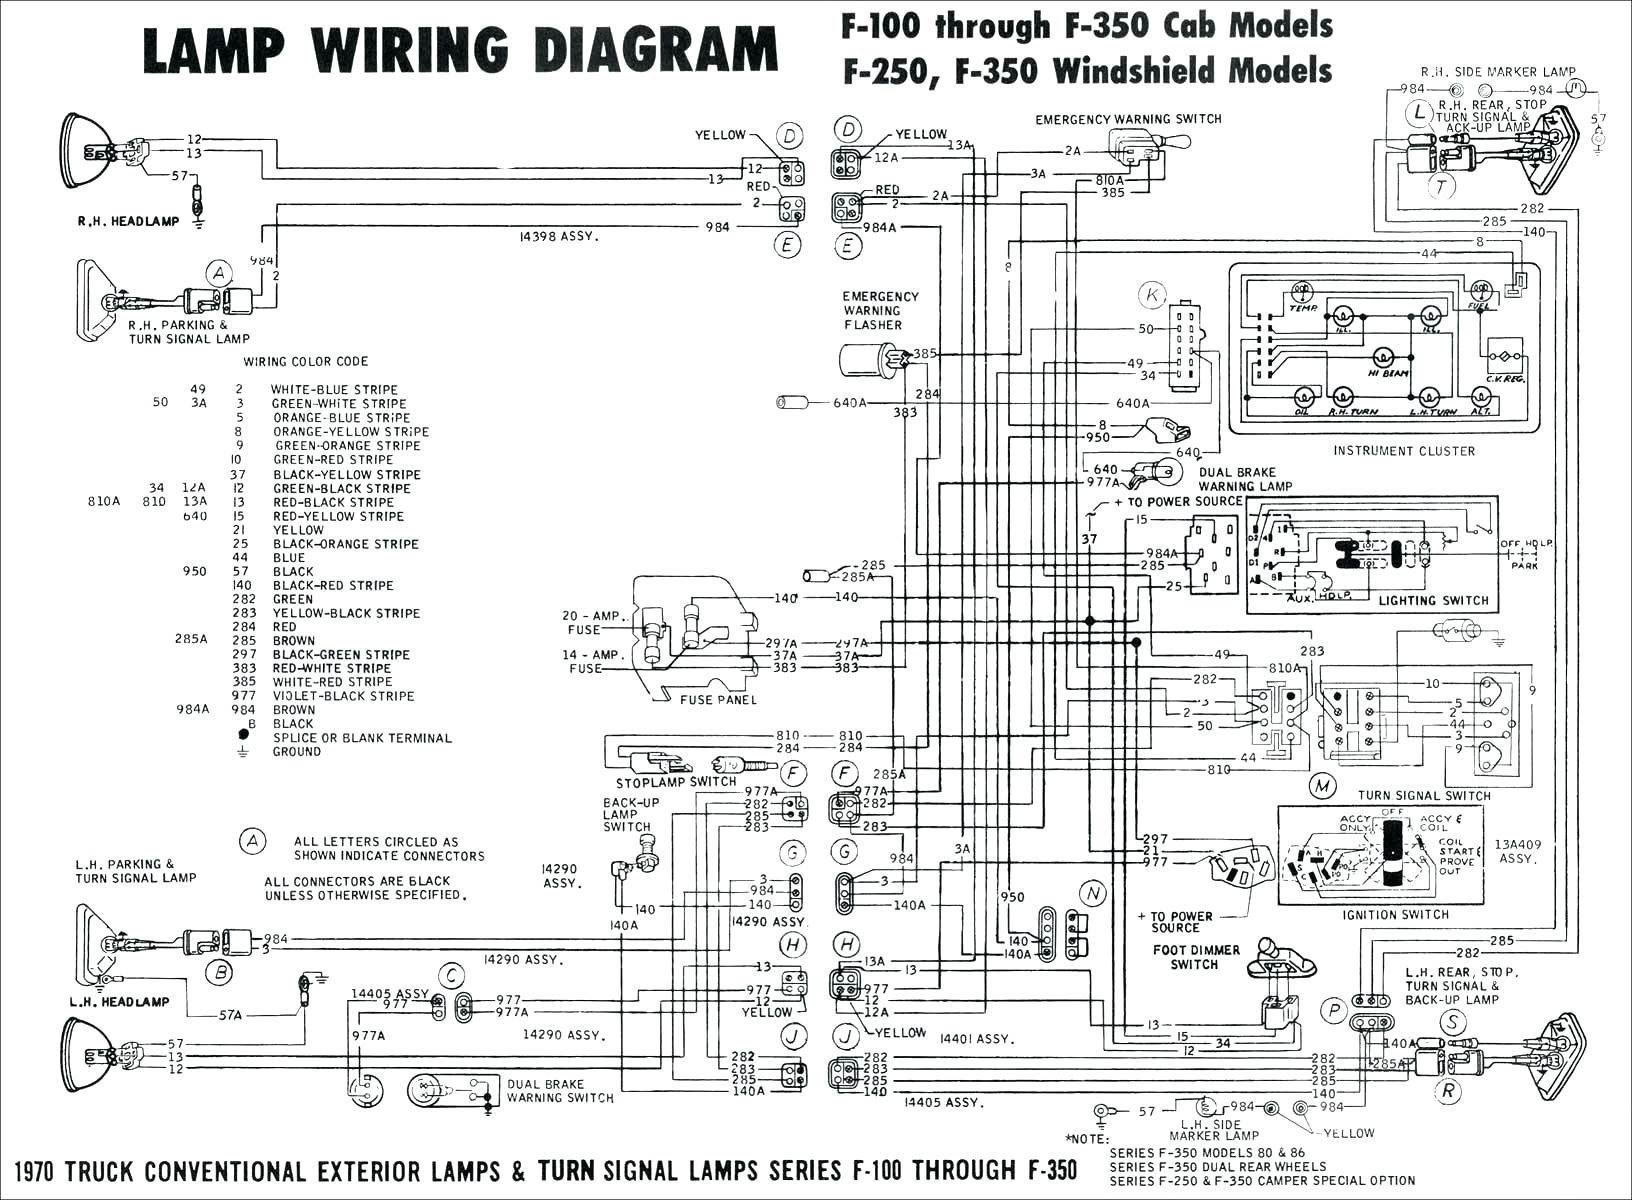 97 Jeep Cherokee Power Window Wiring Diagram - Wiring ...